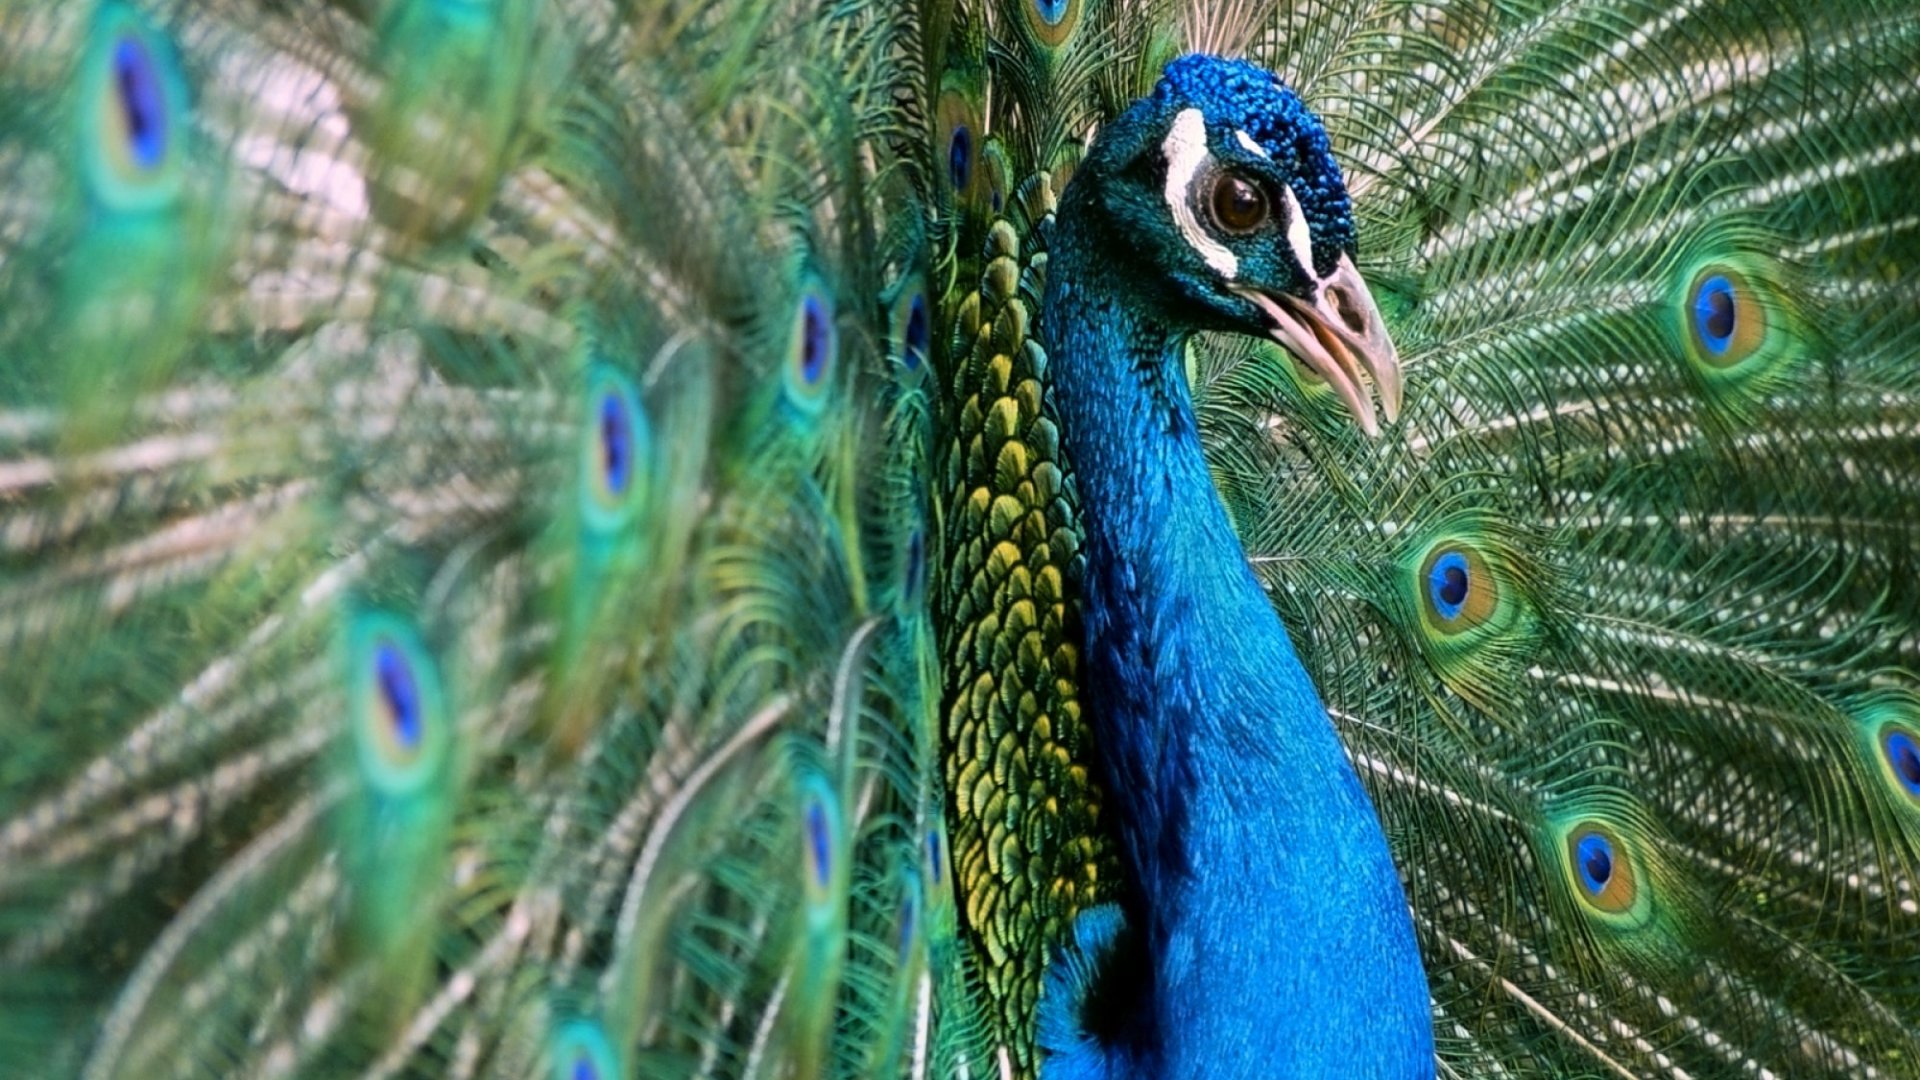 Remember the Emotional Support Peacock a Passenger Tried to Bring on United Airlines? Now It's Dead